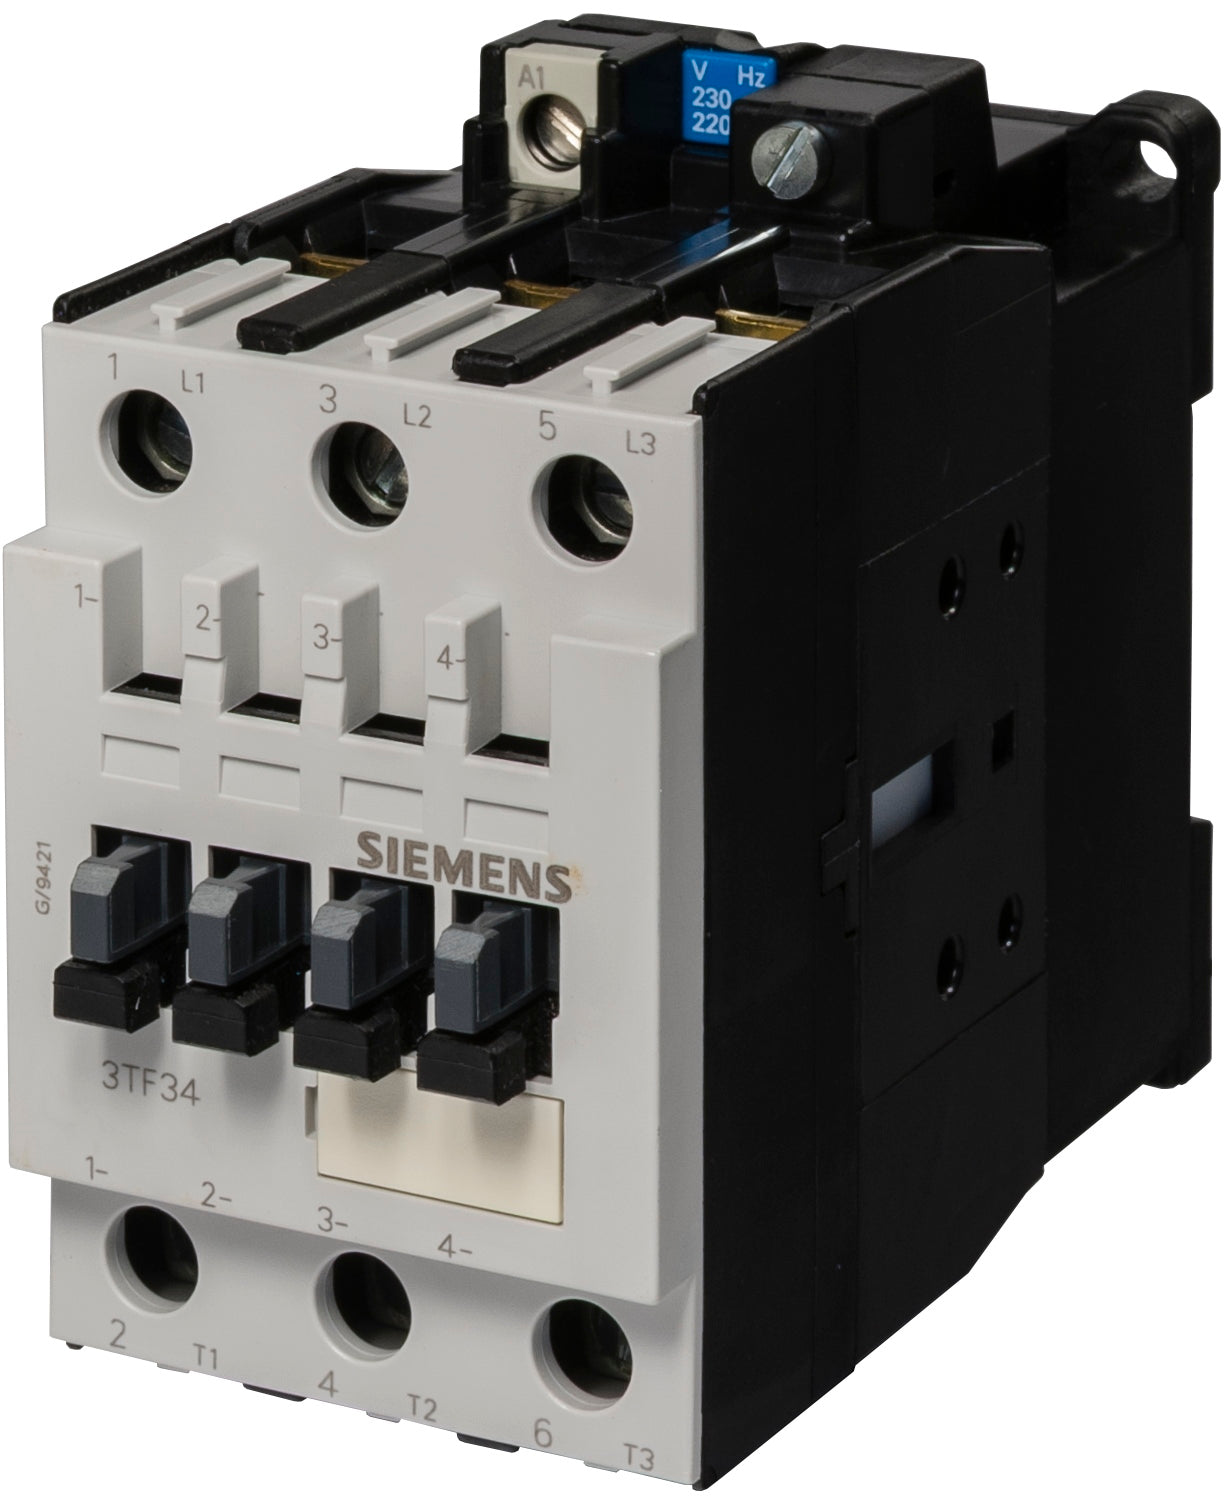 3tf34 contactors motor starters siemens request more information for 3tf34 asfbconference2016 Choice Image